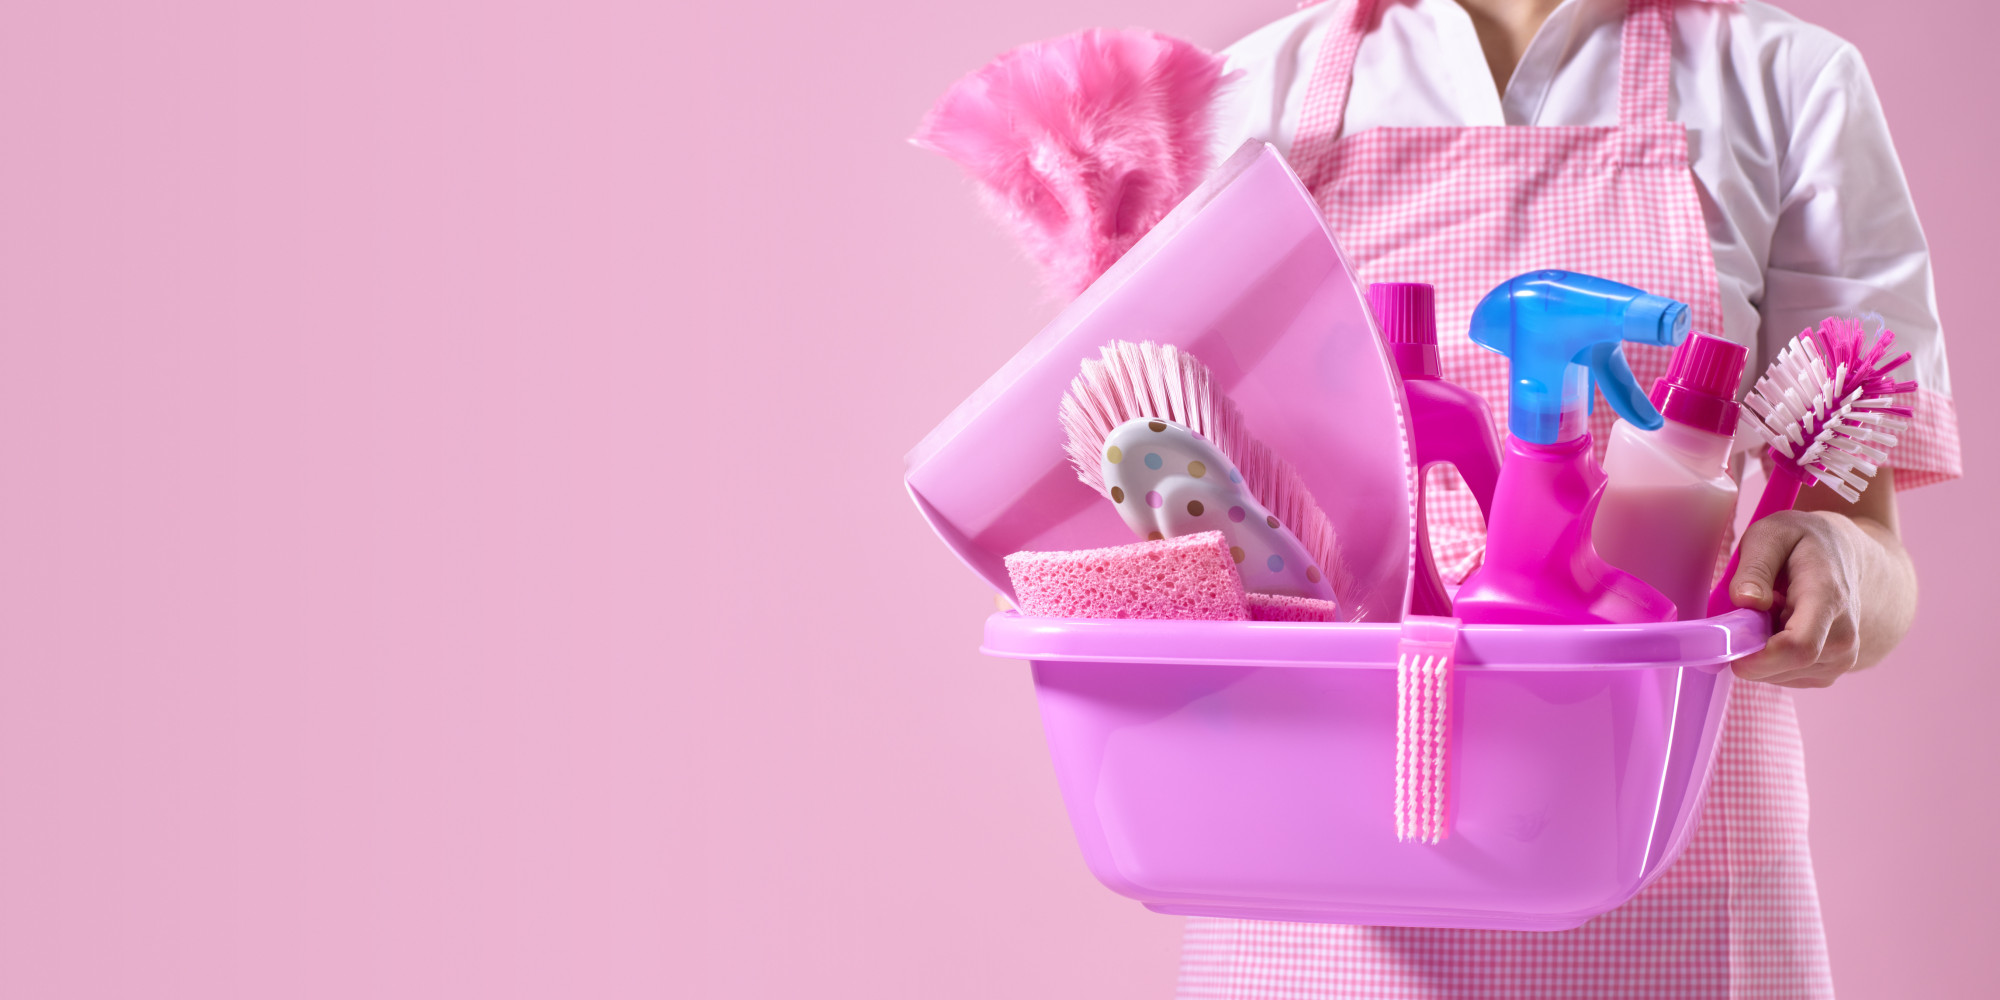 Cleaning Company Dubai Maid Services